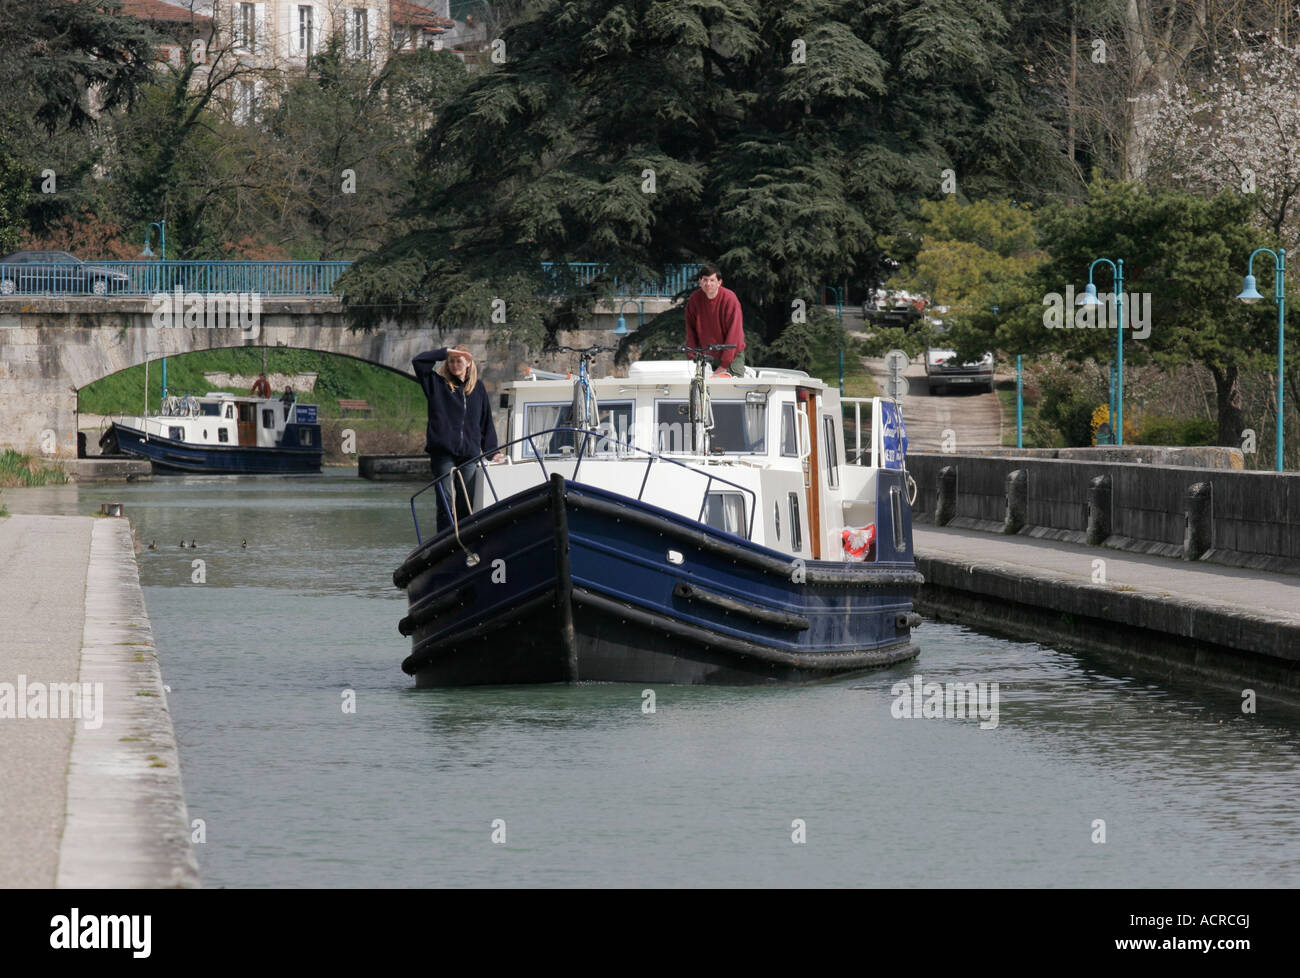 Boating holiday on the Lateral Canal Bridge over the Garonne at Agen in South West France - Stock Image